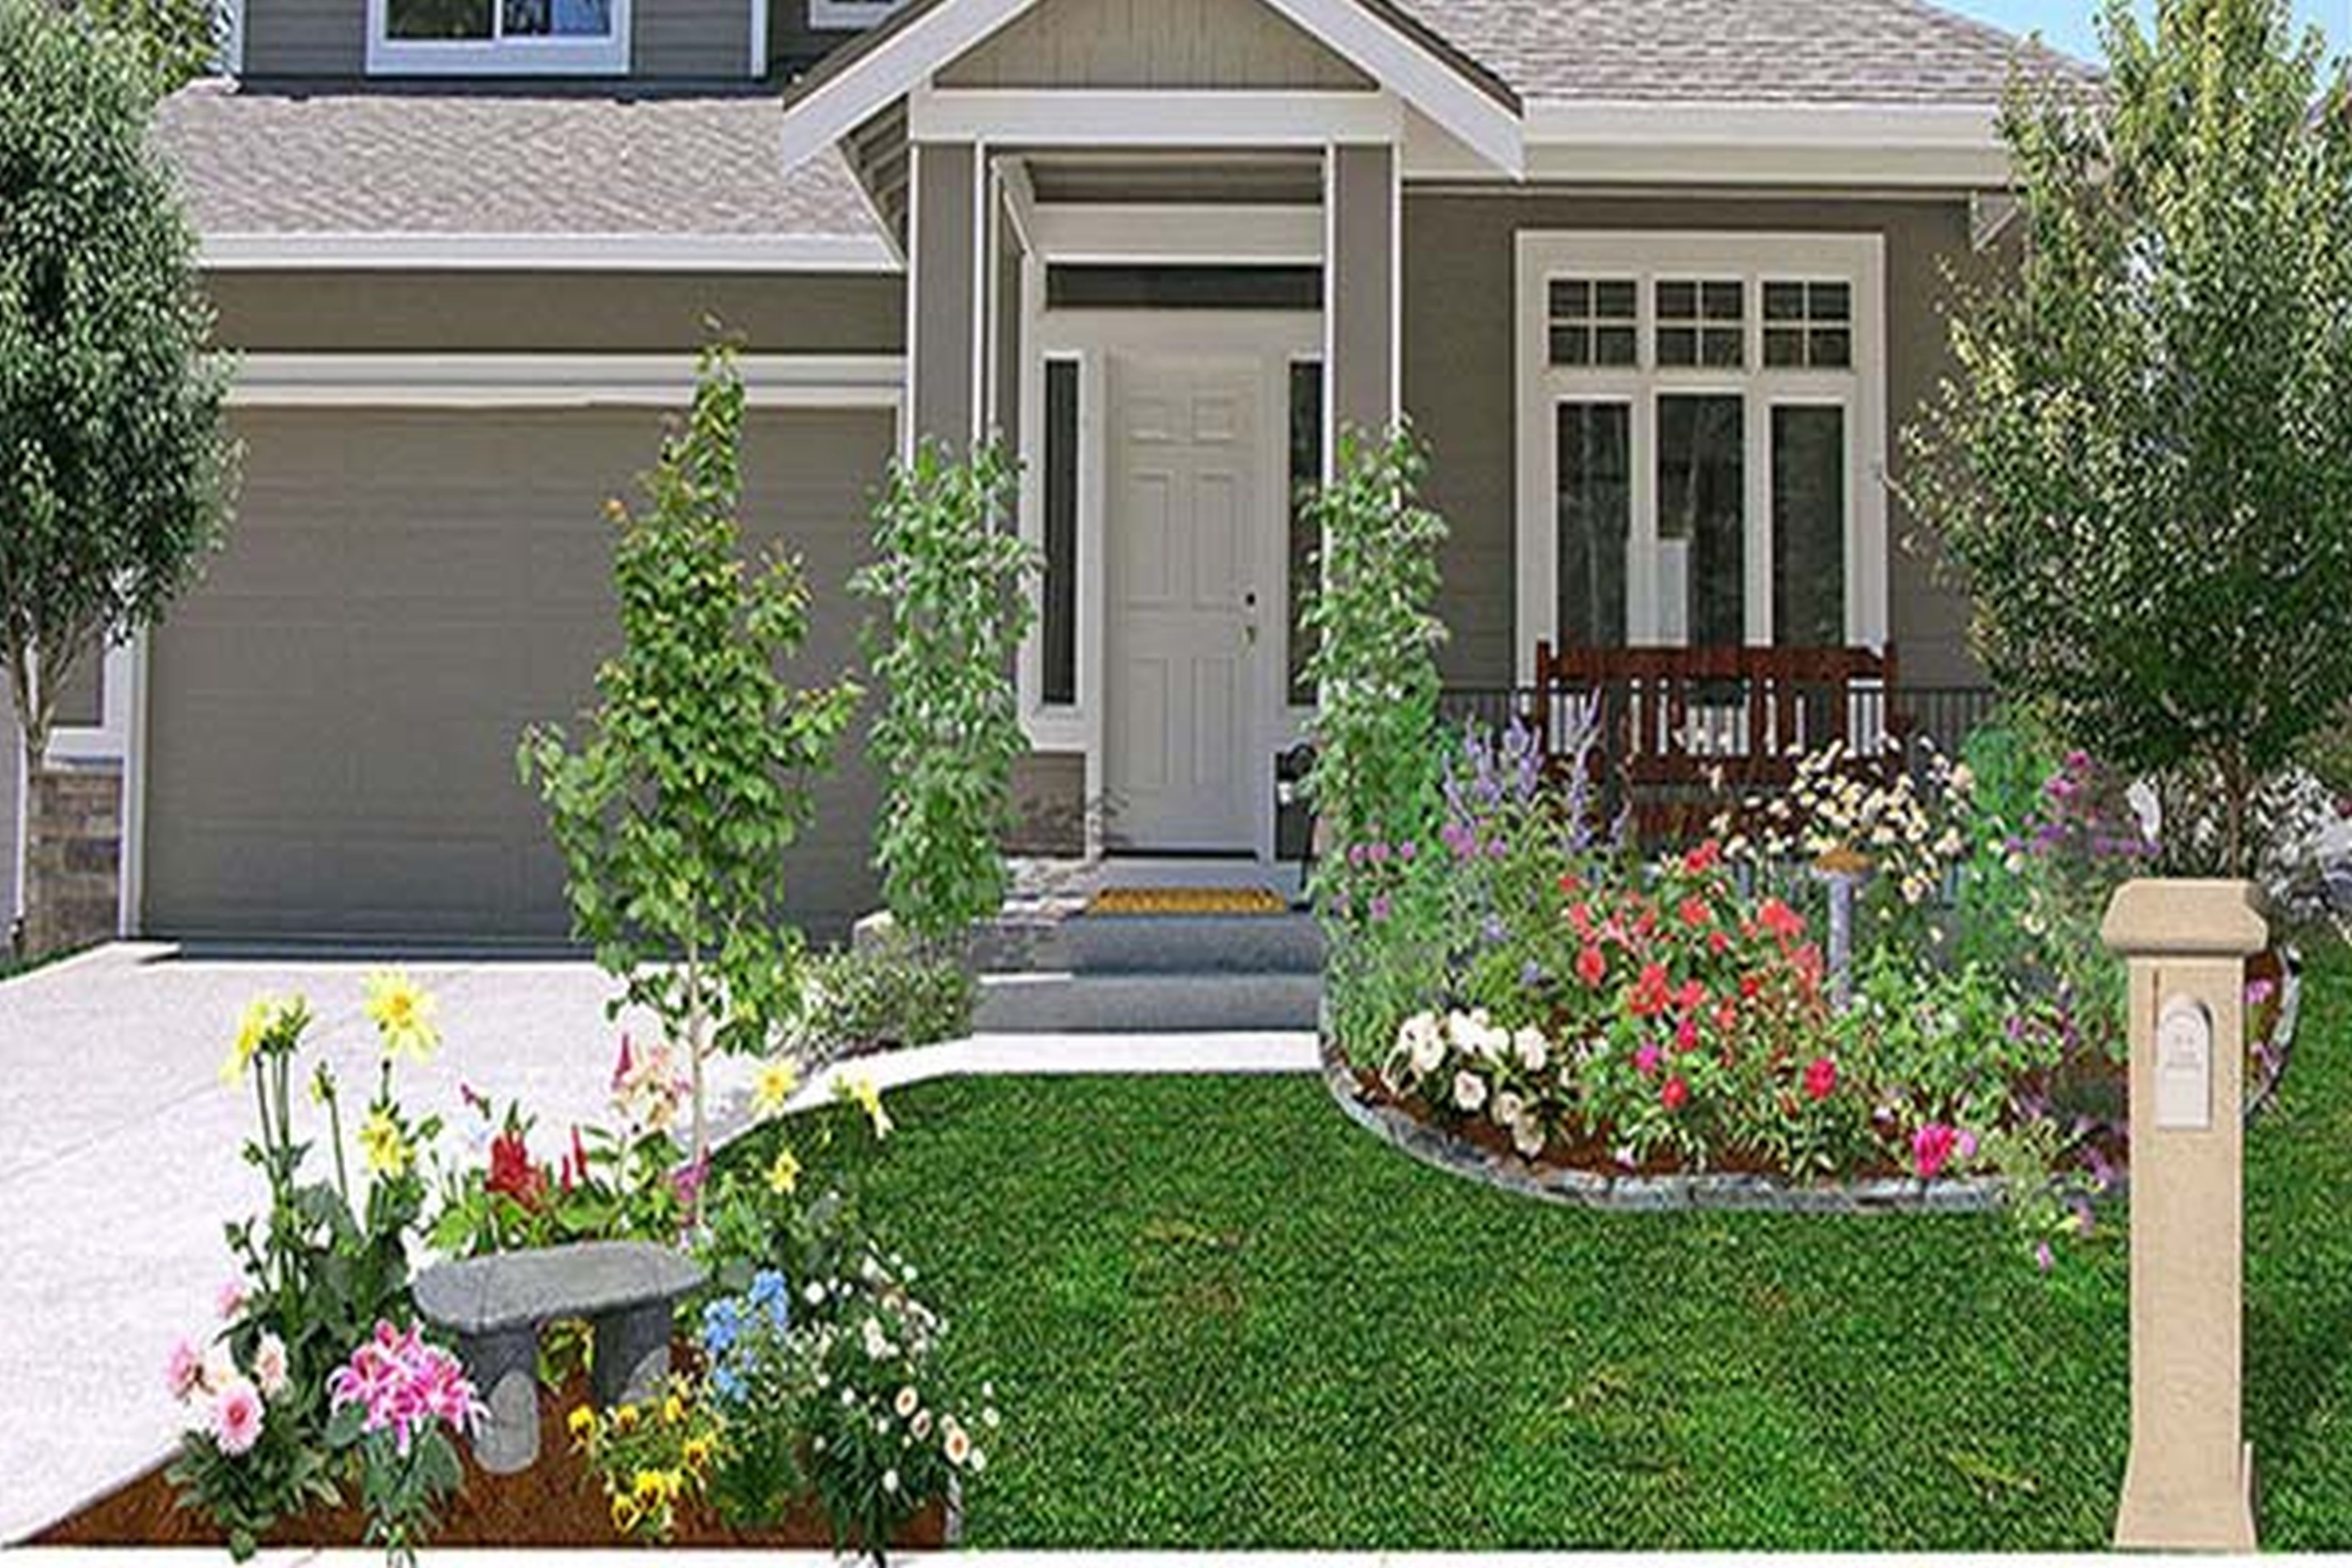 curb appeal on a budget - Google Search | Small house ...